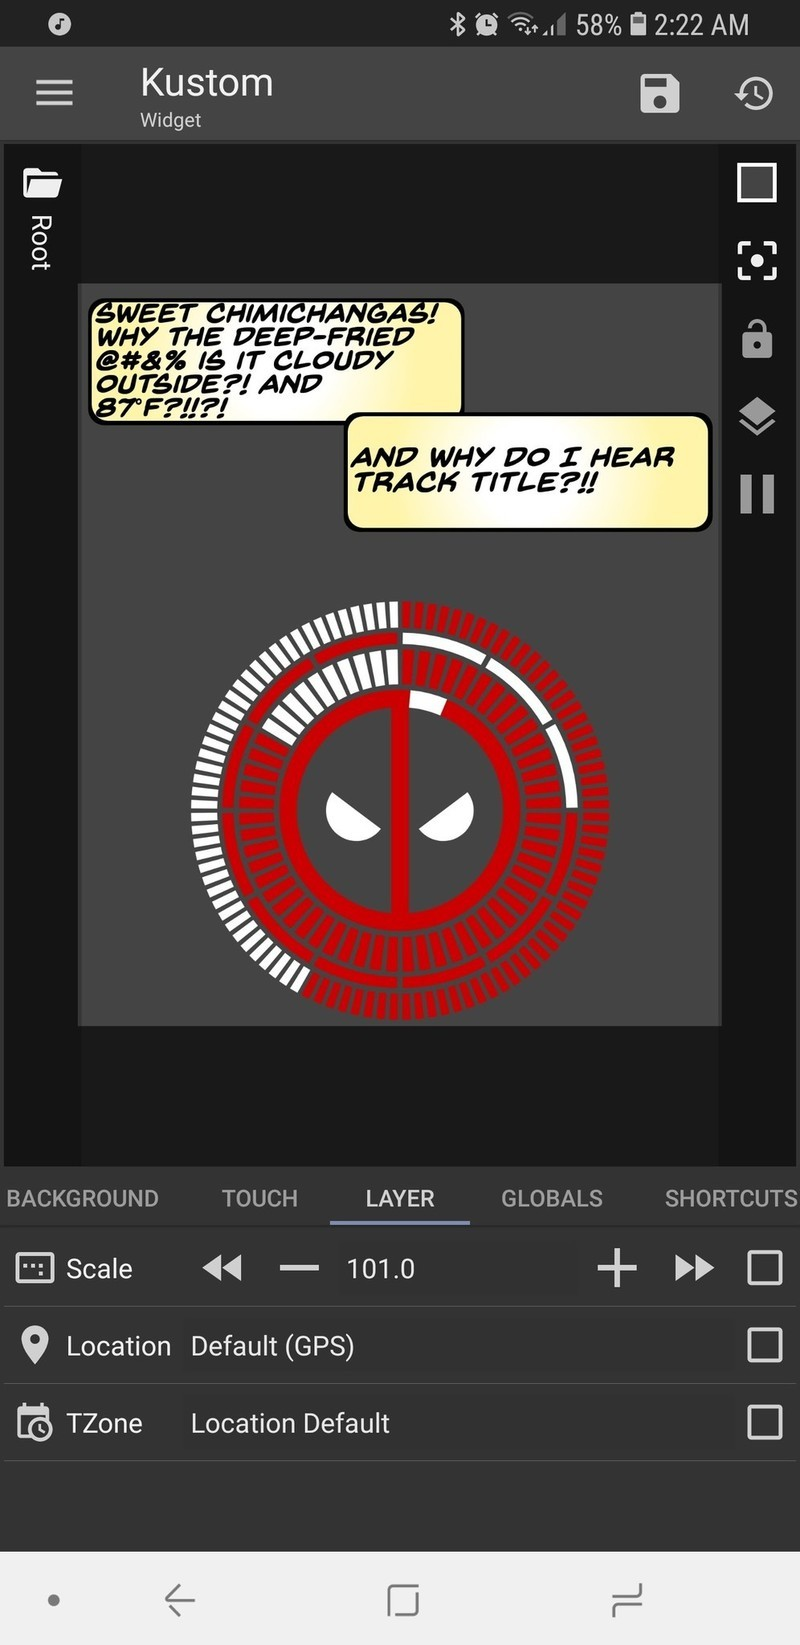 deadpool-18-kwgt-adjust-1-scale.jpg?itok